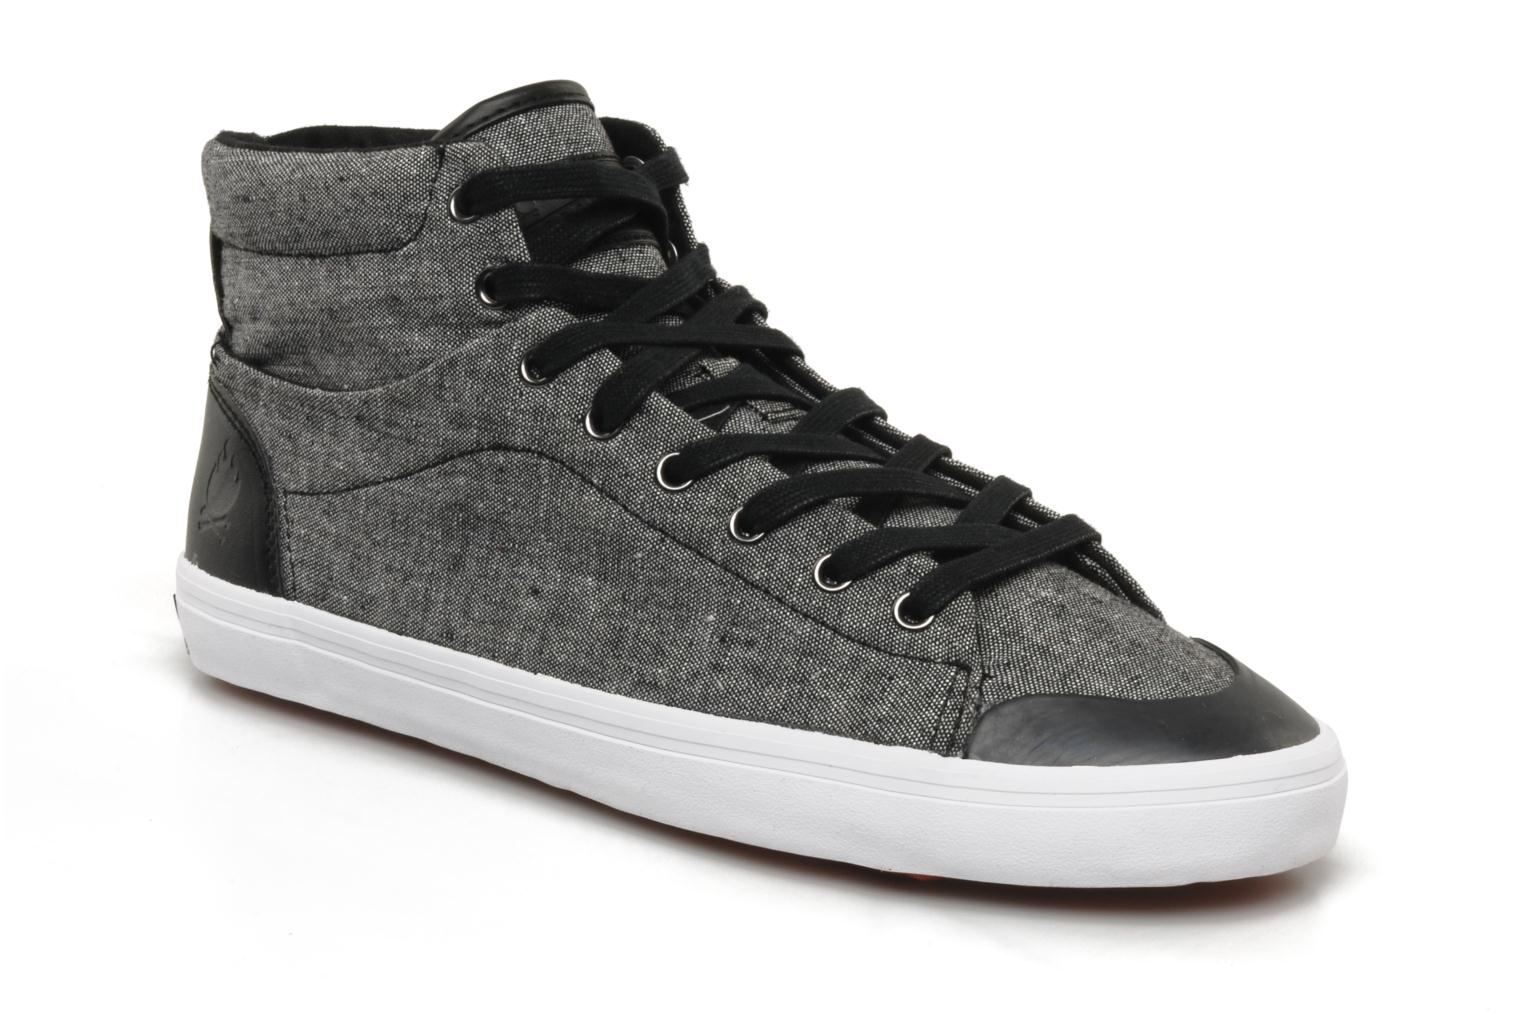 Baskets Bobbie Burns Hemp mid textile M Gris vue détail/paire